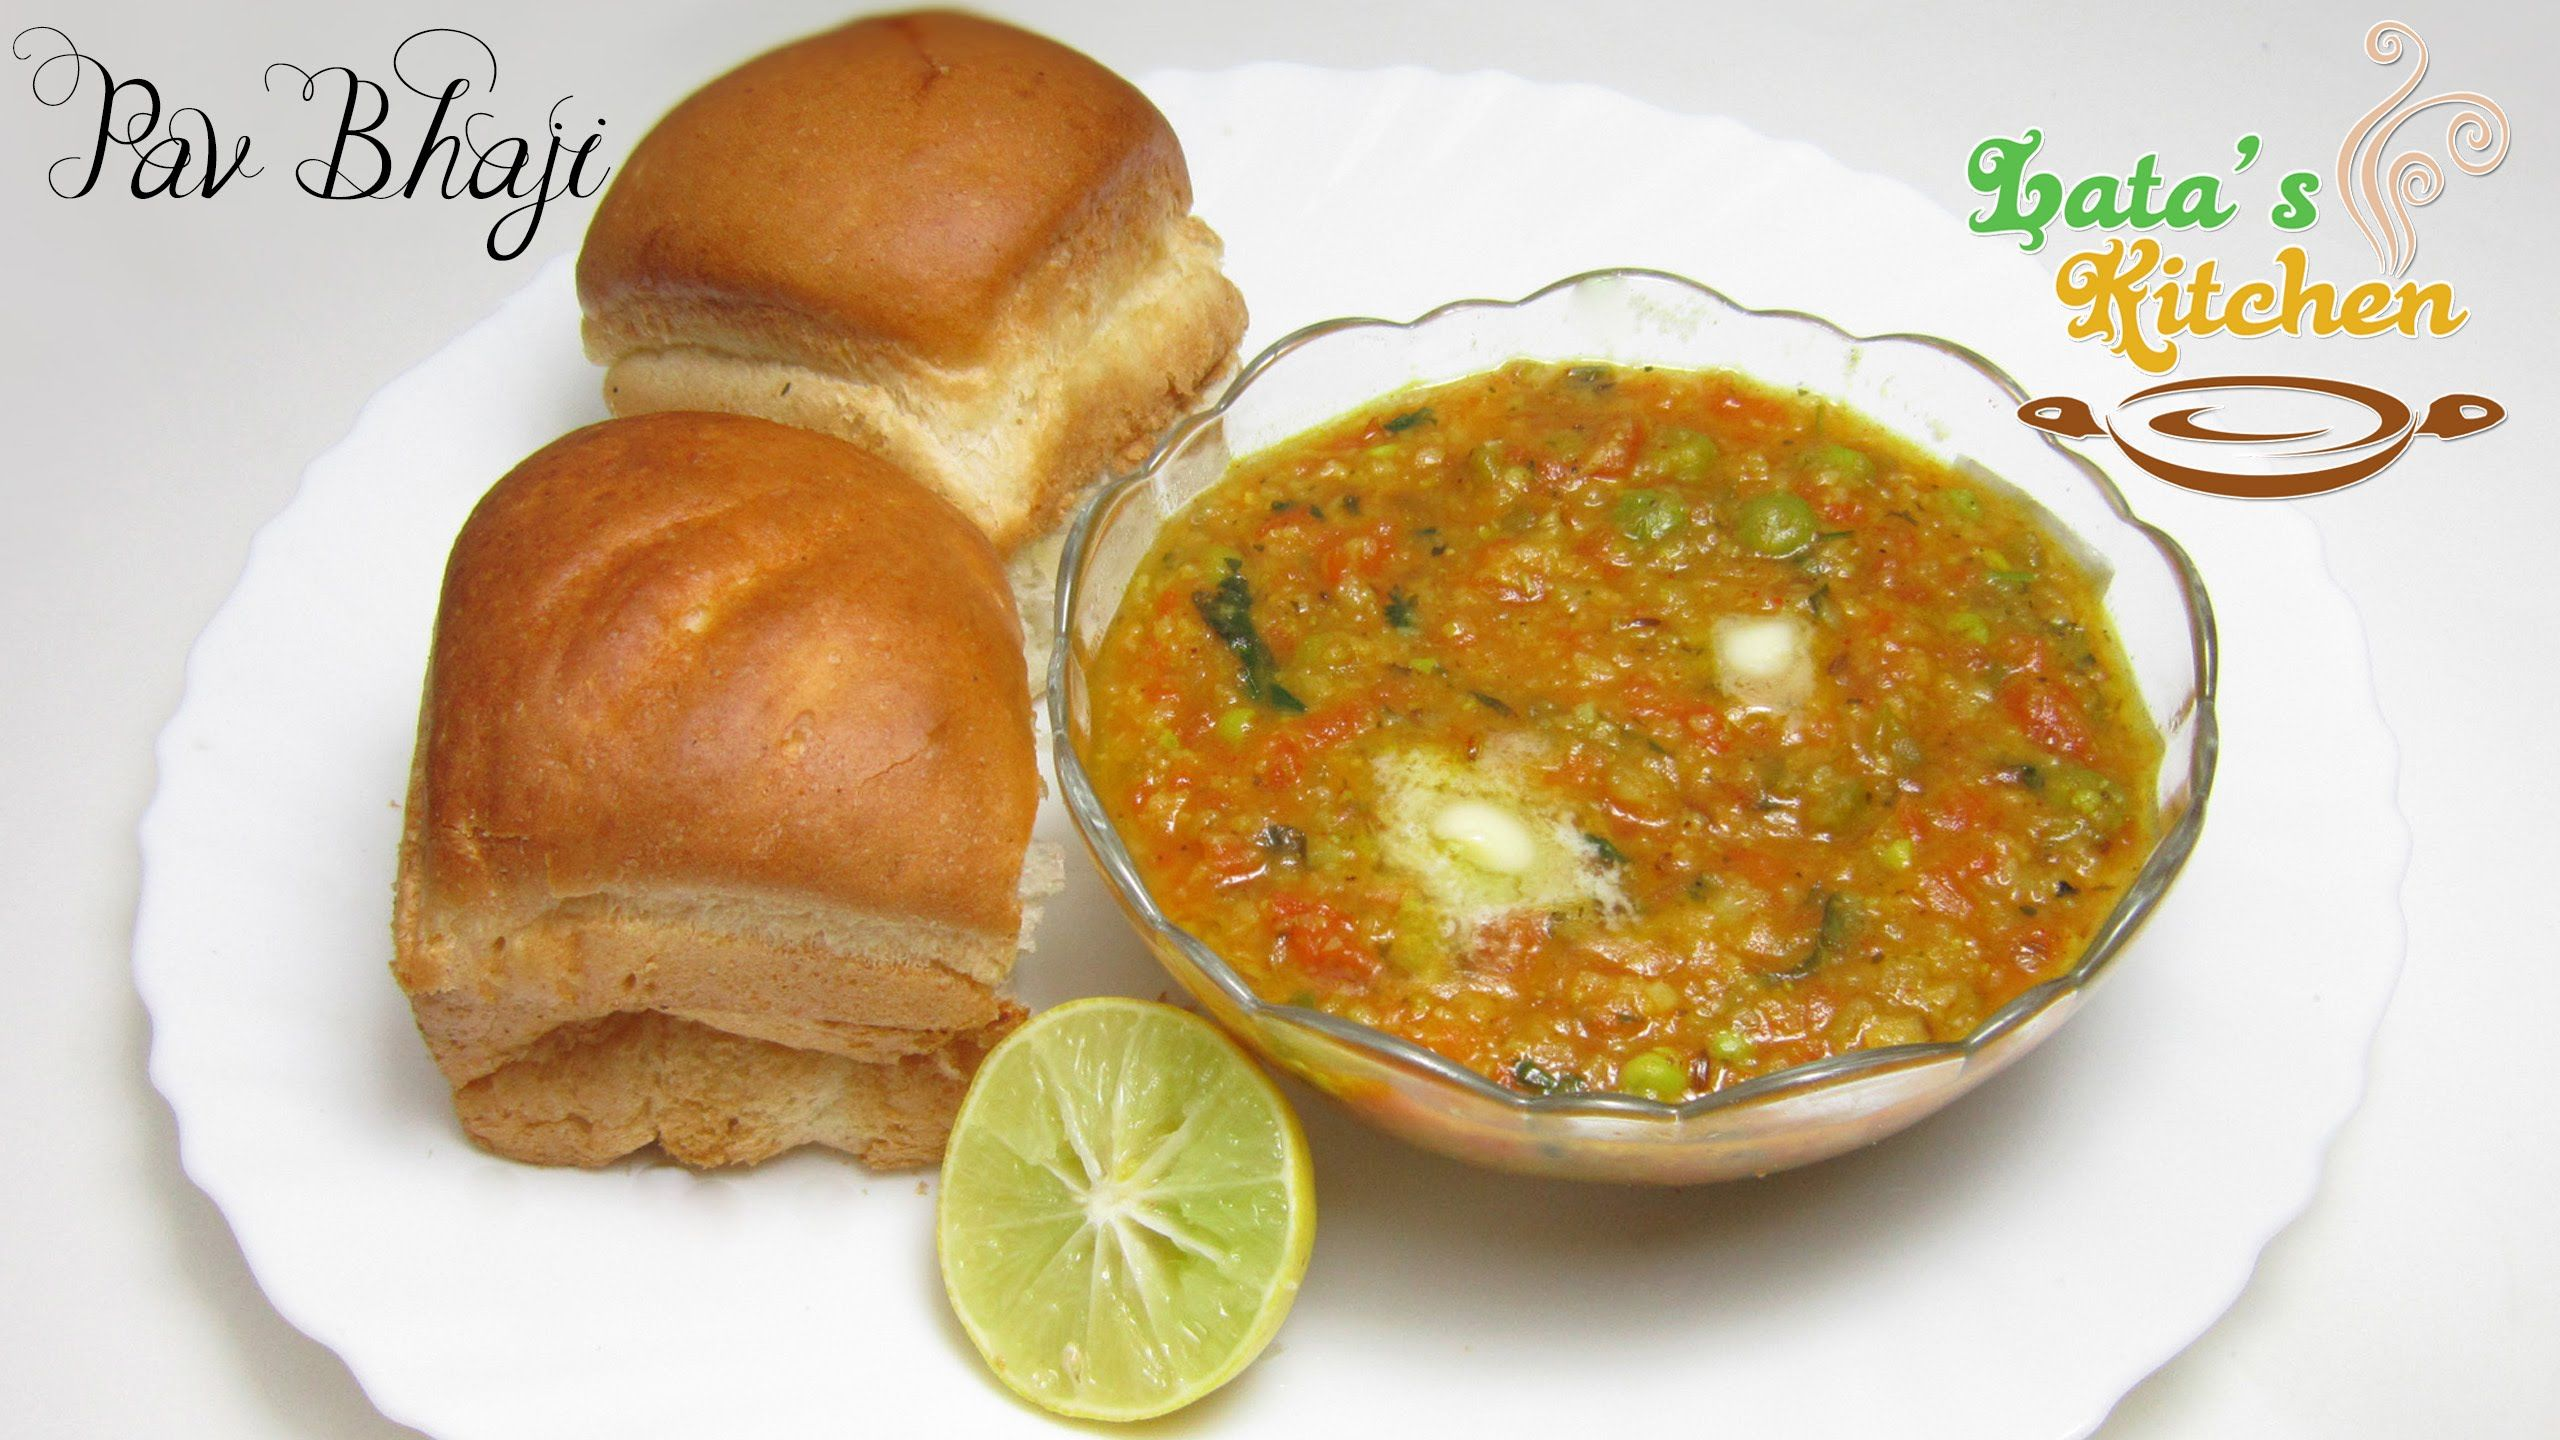 Pav bhaji recipe indian vegetarian recipe video in hindi by lata pav bhaji recipe indian vegetarian recipe video in hindi by lata jain forumfinder Image collections